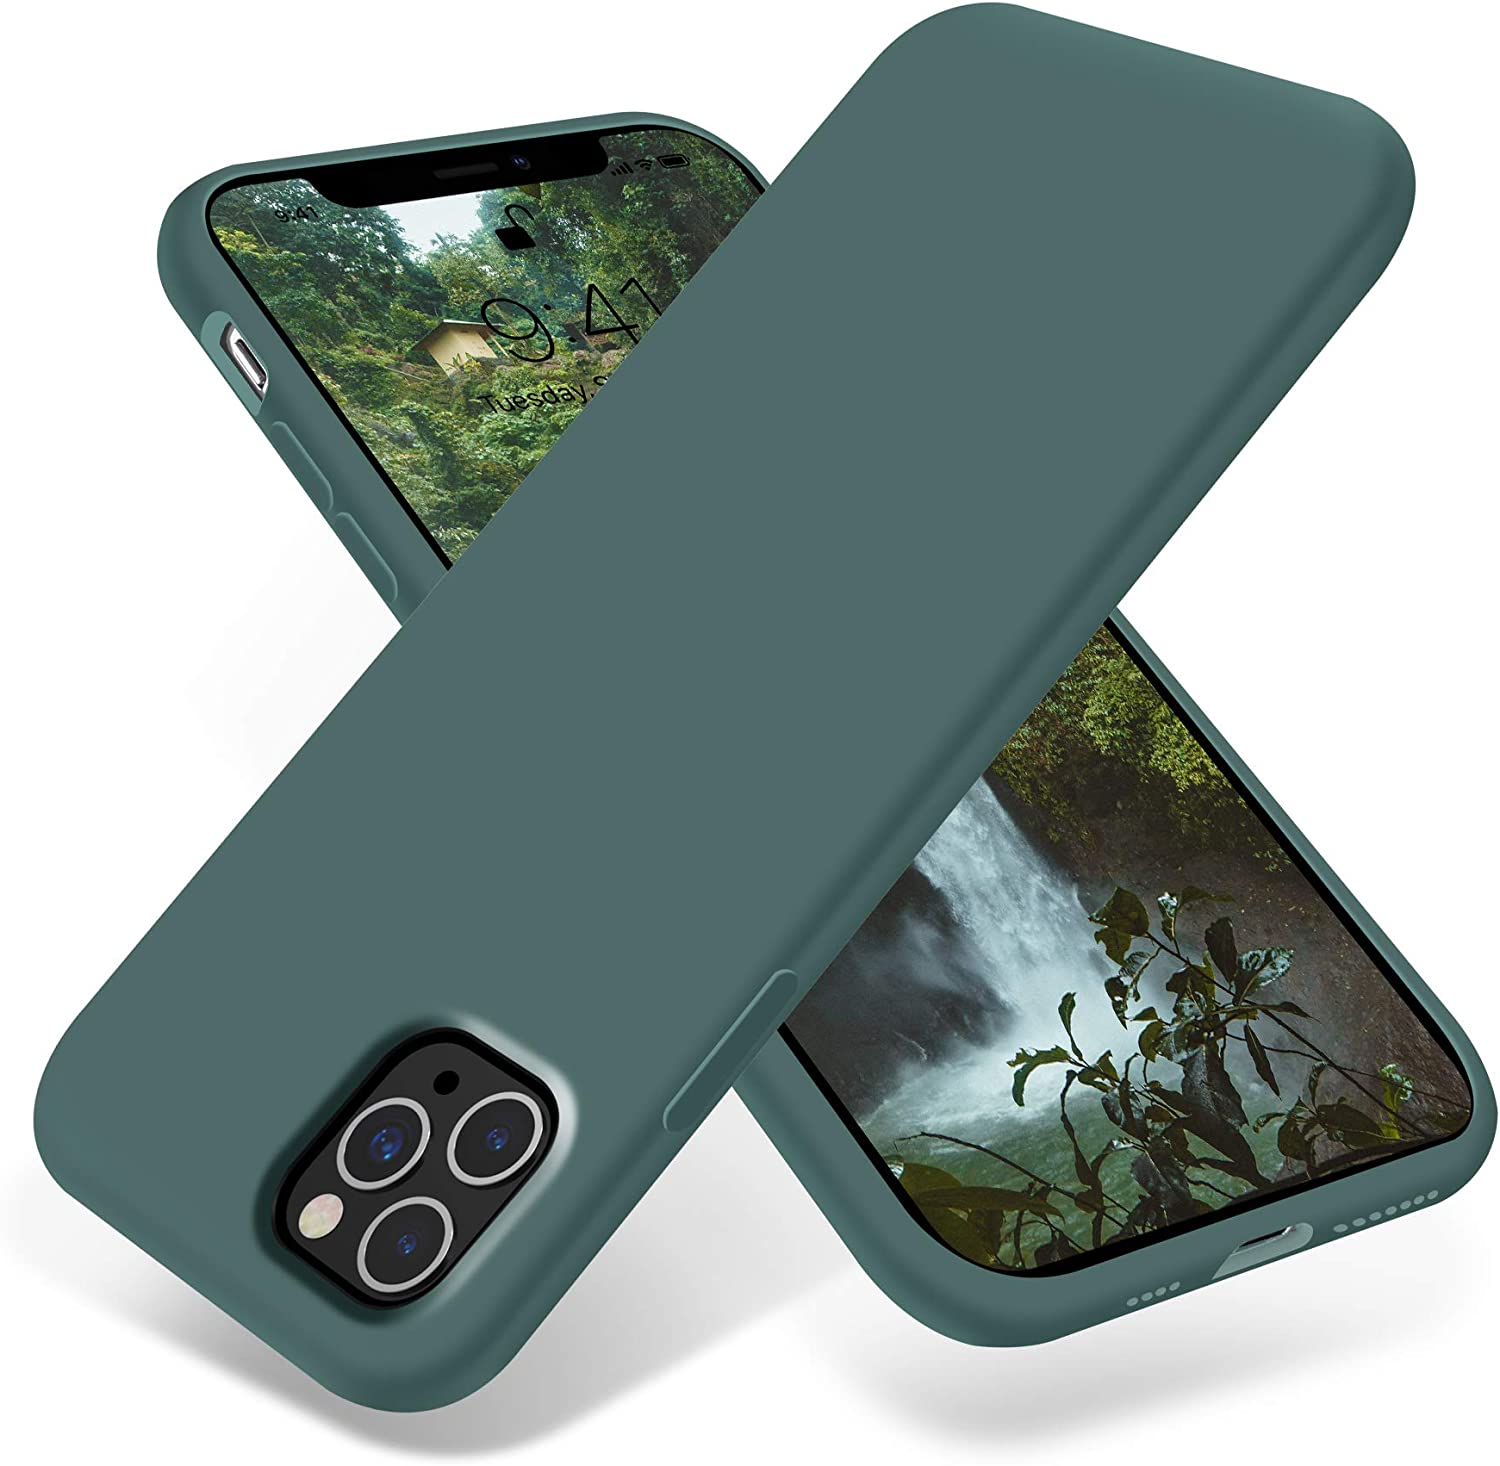 OTOFLY iPhone 11 Pro Max Case,Ultra Slim Fit iPhone Case Liquid Silicone Gel Cover with Full Body Protection Anti-Scratch Shockproof Case Compatible with iPhone 11 Pro Max (Pine Green)